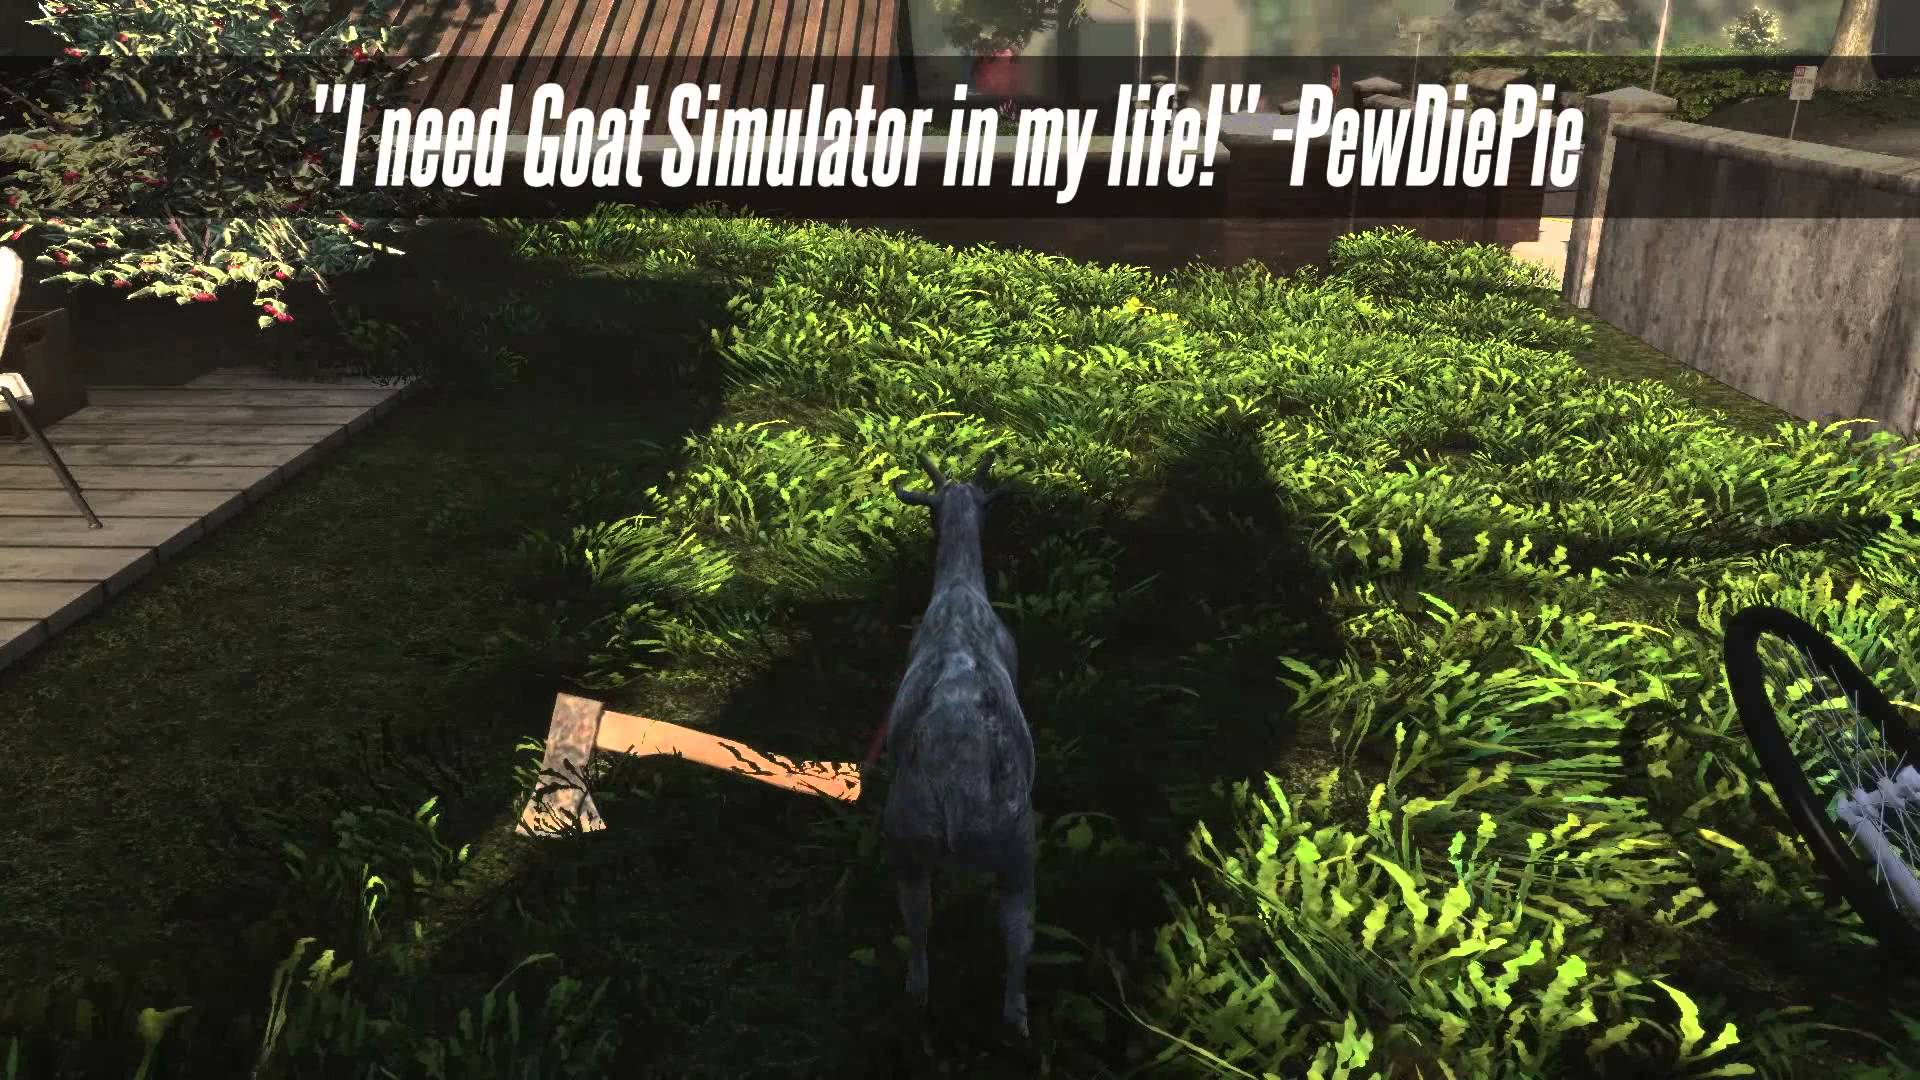 Goat Simulator', A Video Game That Simulates the Life of a Goat, Now